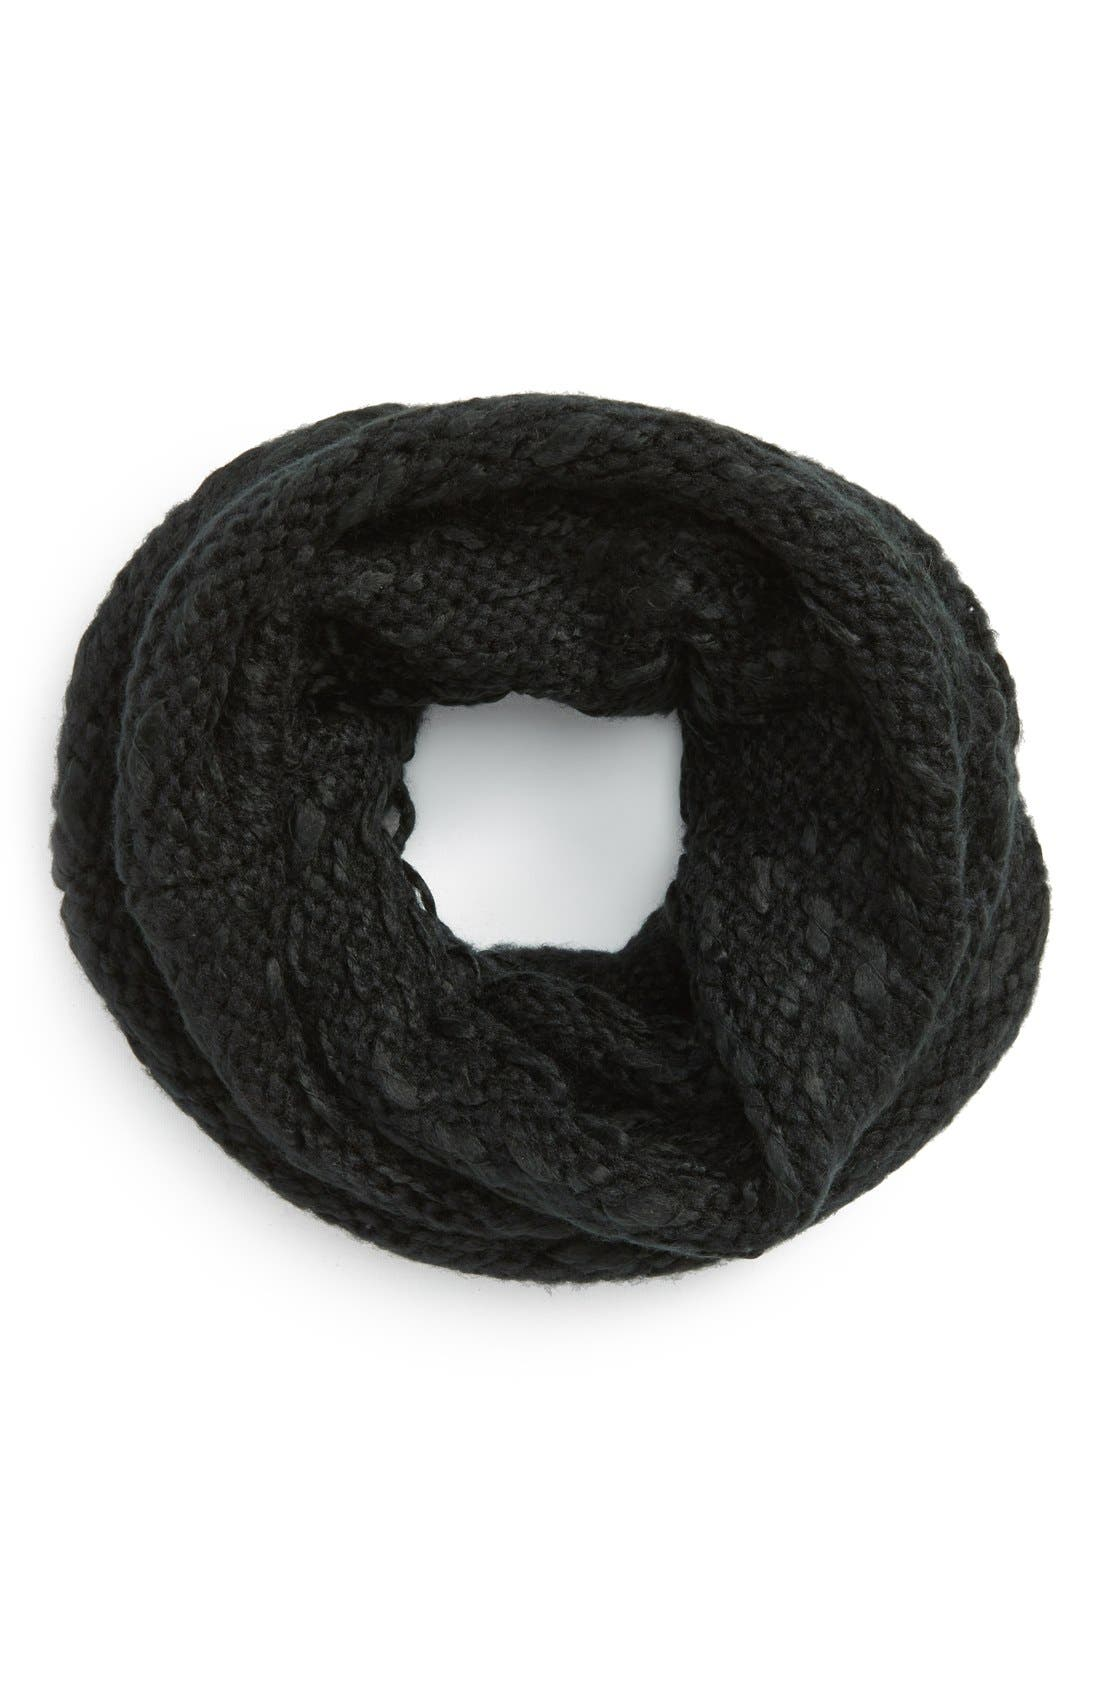 'Thick Thin' Knit Infinity Scarf,                             Main thumbnail 1, color,                             001